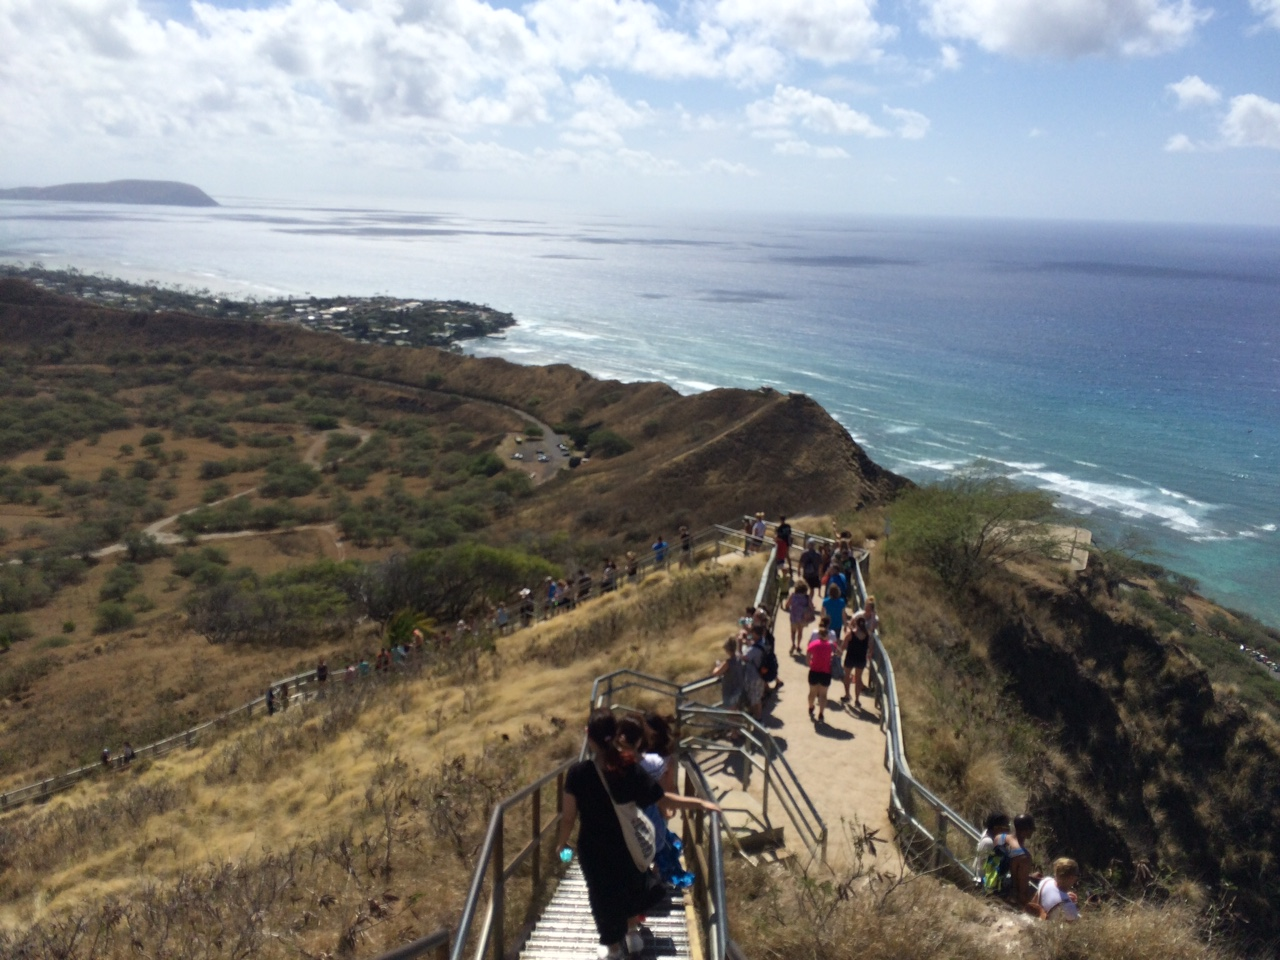 us-hs-TW1537829-hawaii expedition_ (14)